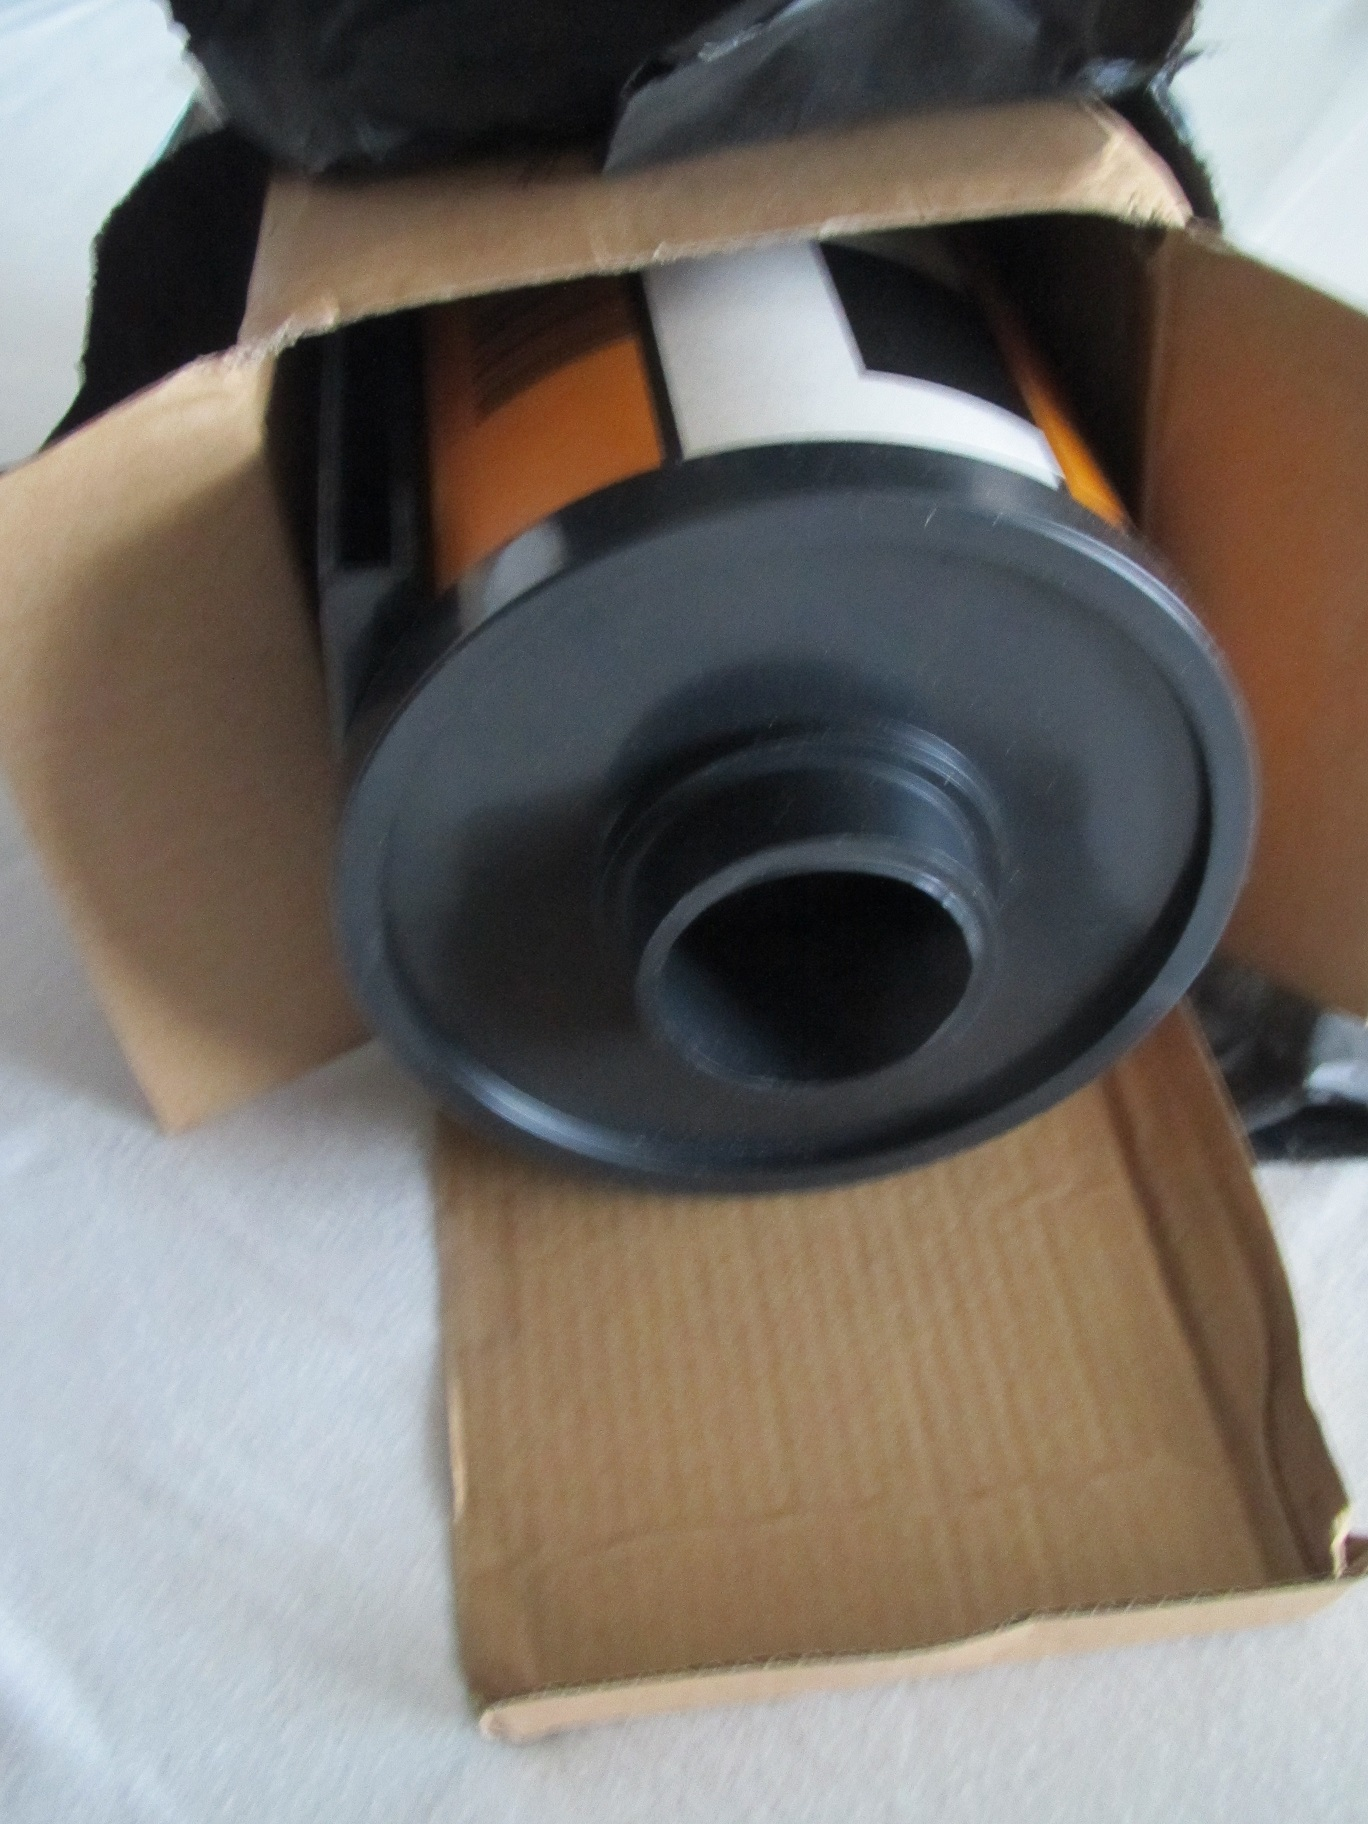 Toilet Paper Roll Holder Creative Camera Film Roll photo review